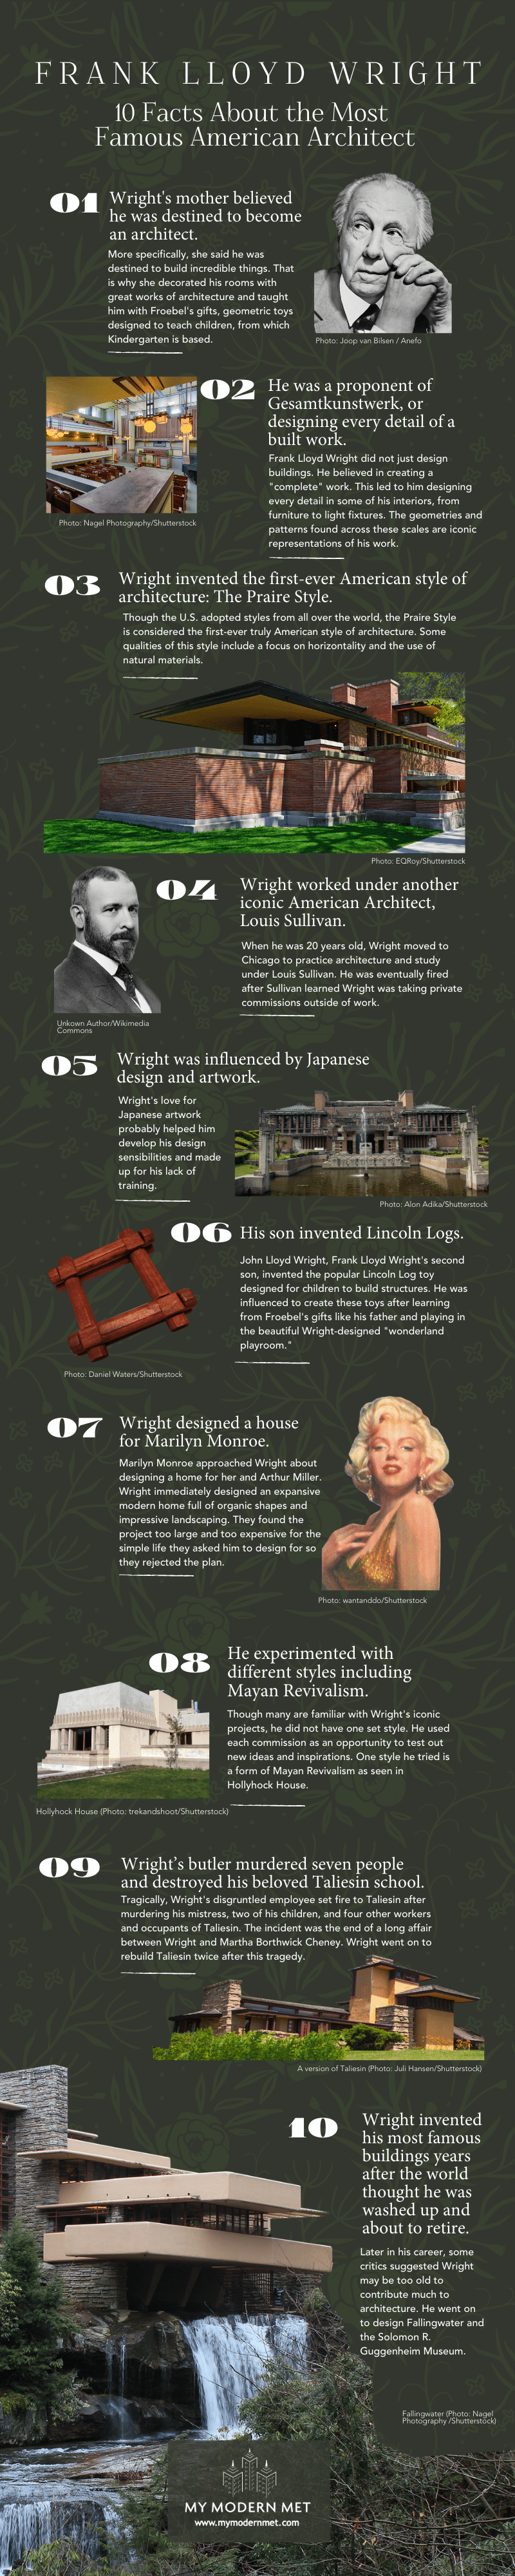 Frank Lloyd Wright Facts Infographic